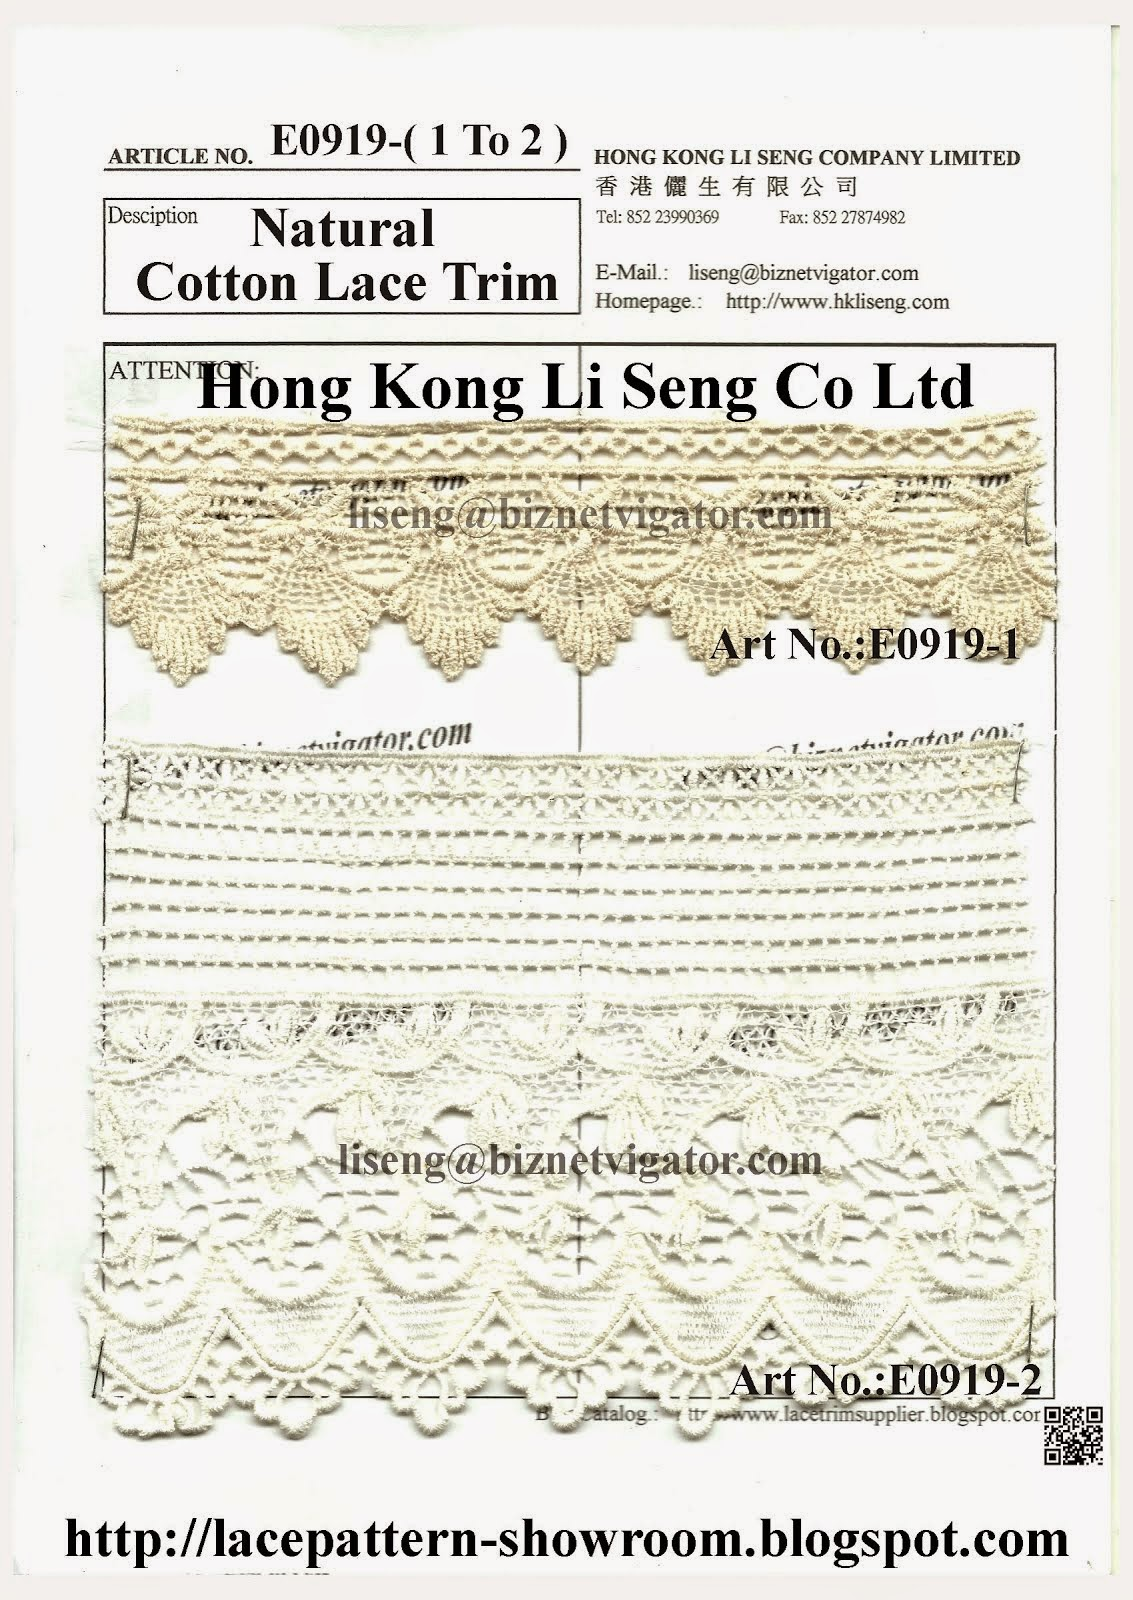 New Natrual Cotton Lace Trim Manufacturer Wholesaler Supplier - Hong Kong Li Seng Co Ltd